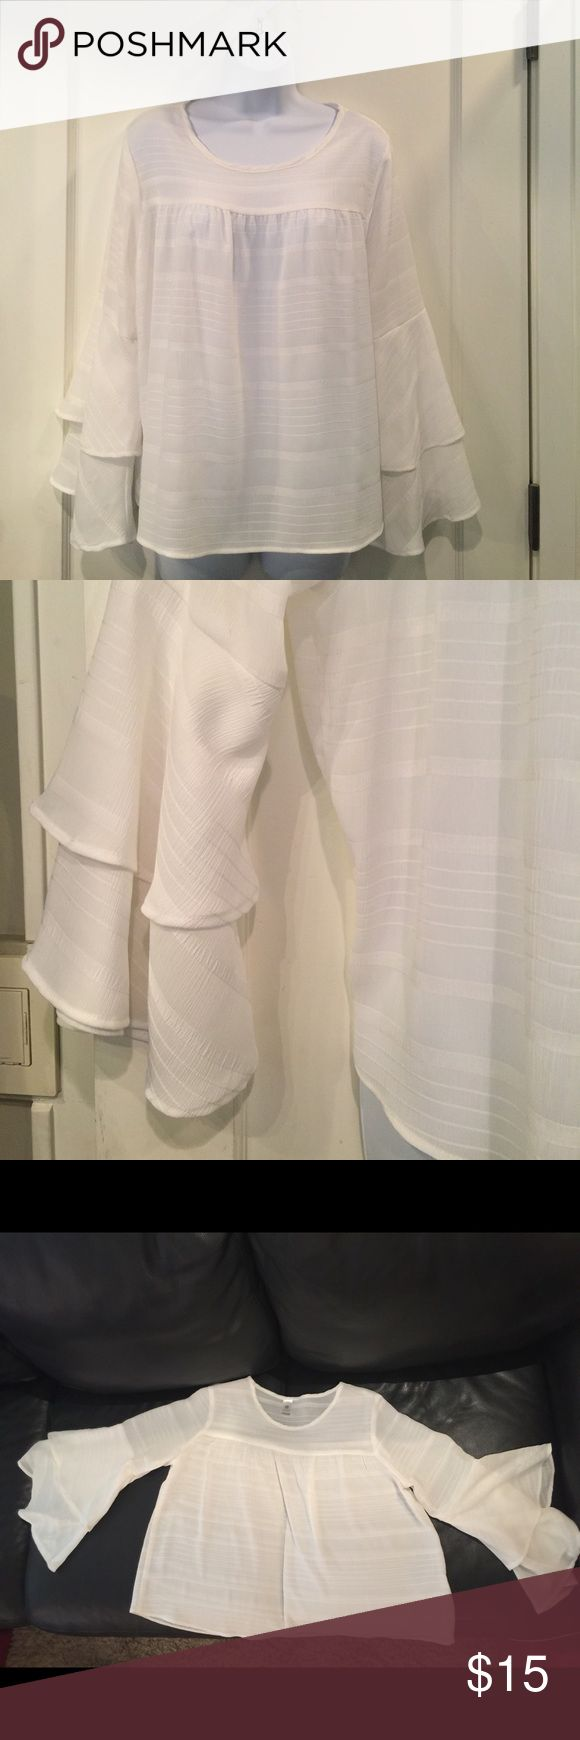 White flowing blouse White flowing blouse rokoko Tops Blouses